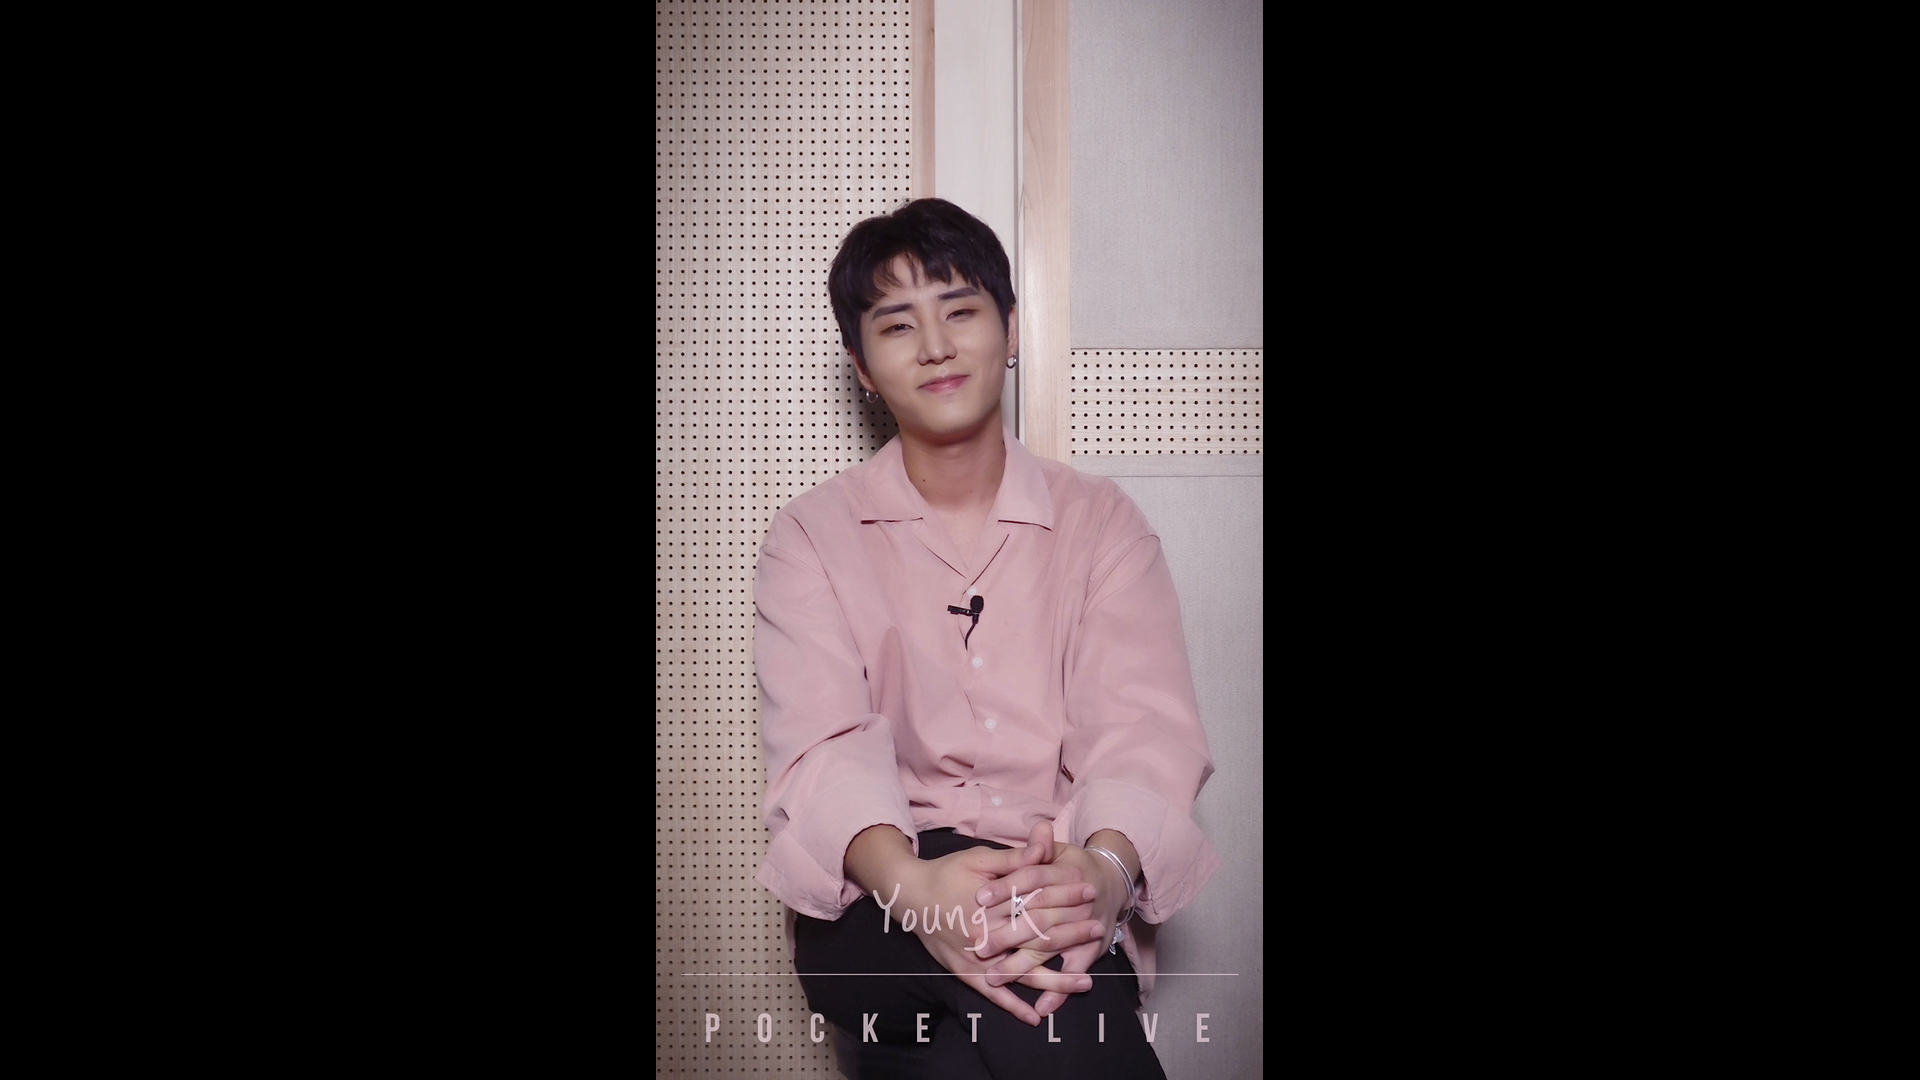 """[POCKET LIVE] DAY6(데이식스) Young K(영케이) """"I Loved You"""""""